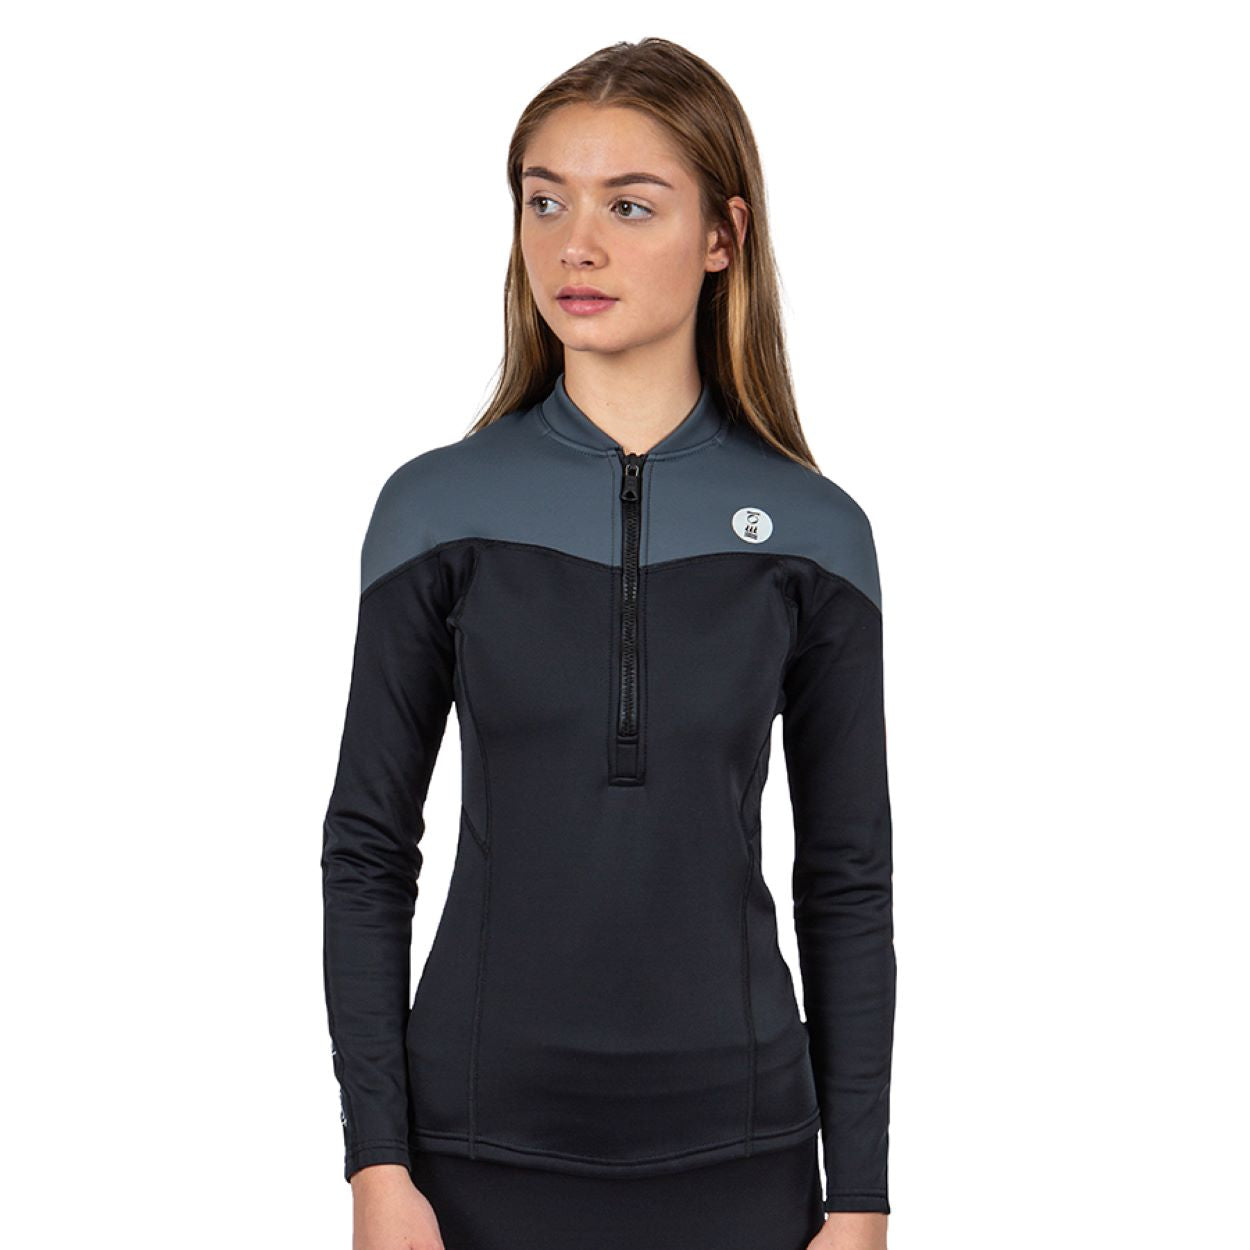 FOURTH ELEMENT THERMOCLINE LONG SLEEVE TOP (FEMALE)